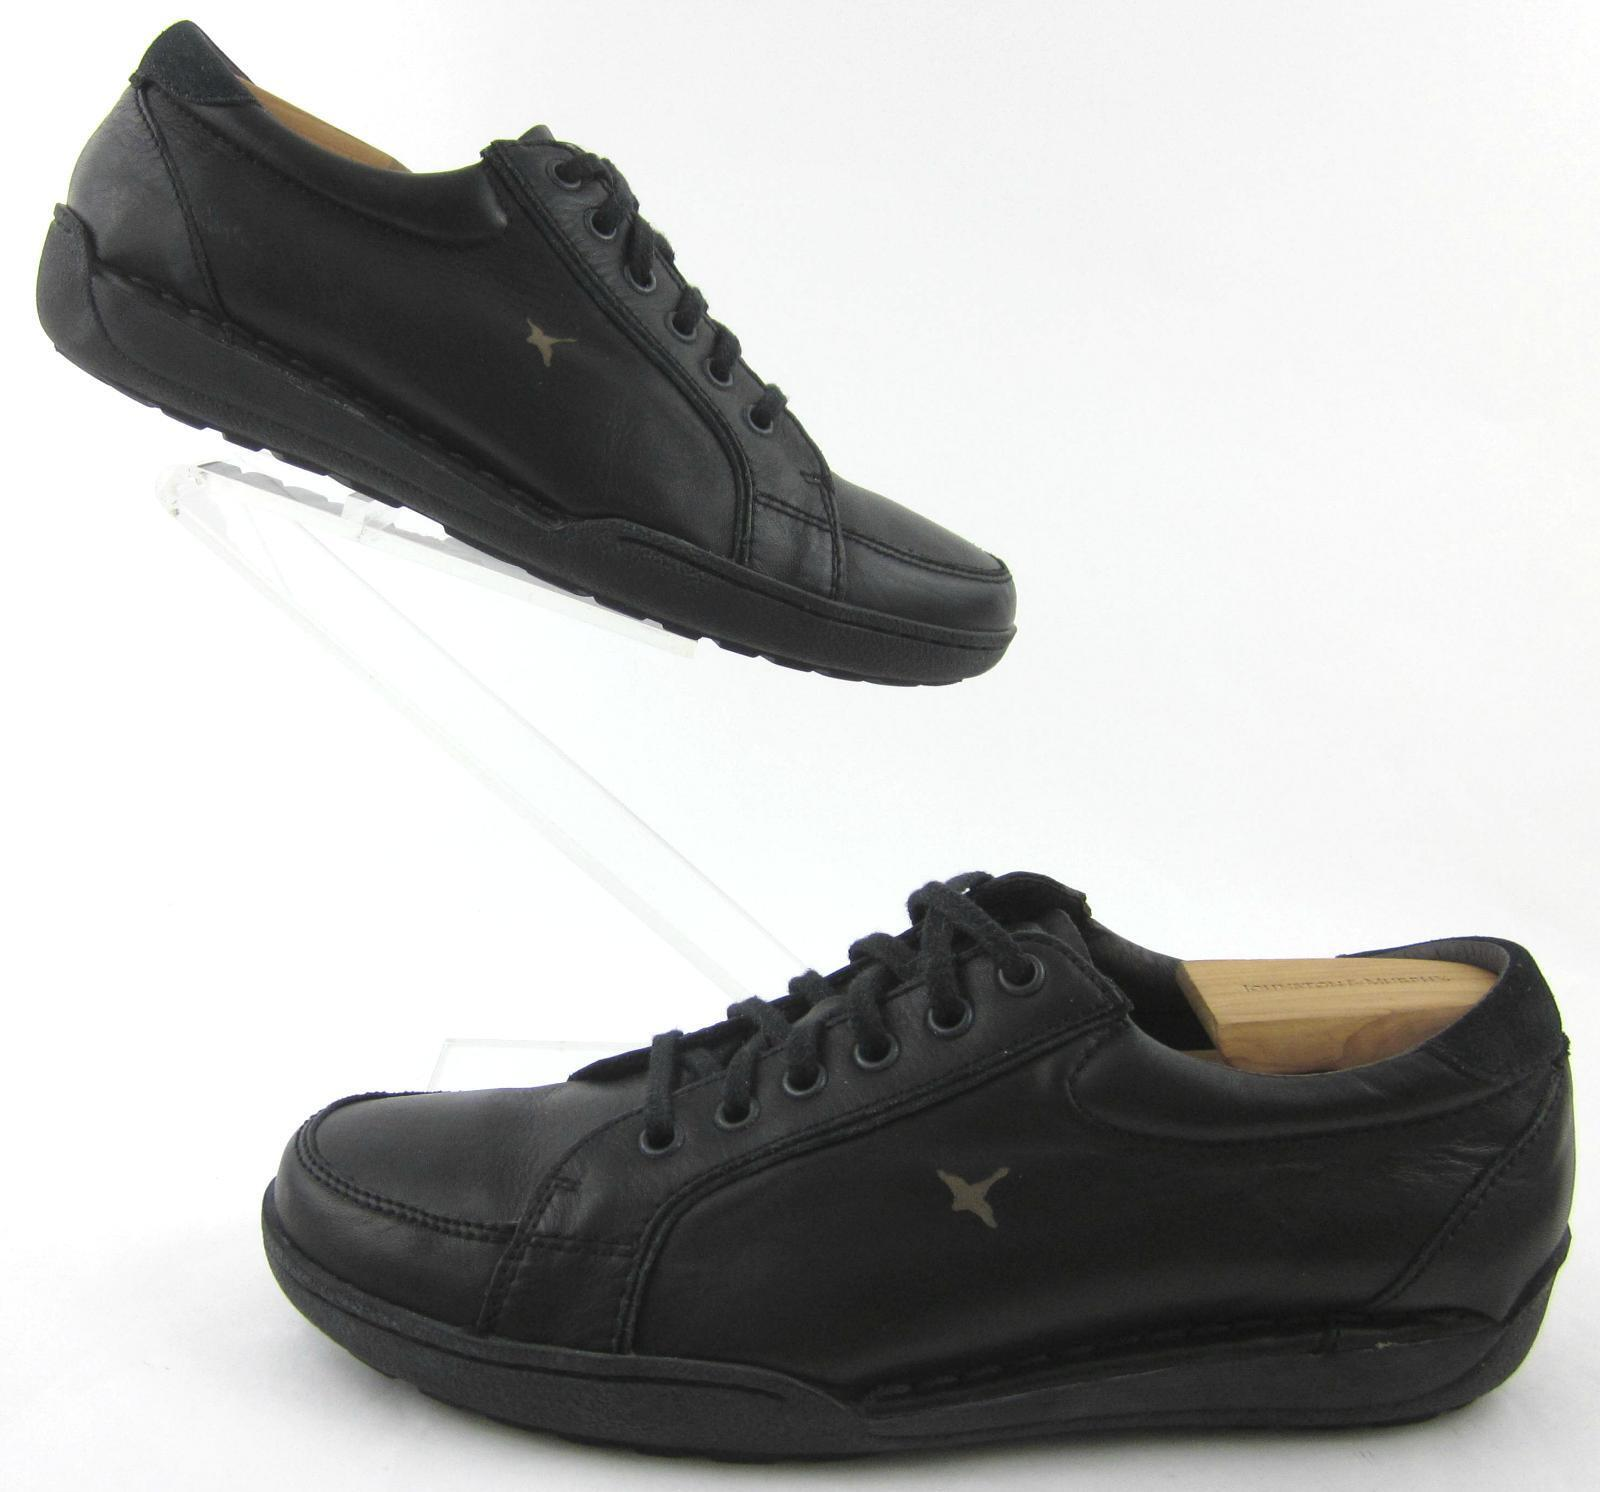 Pikolinos Moc Toe Lace Up Casual shoes Black Leather EU 43 Runs Big Fits US 10.5